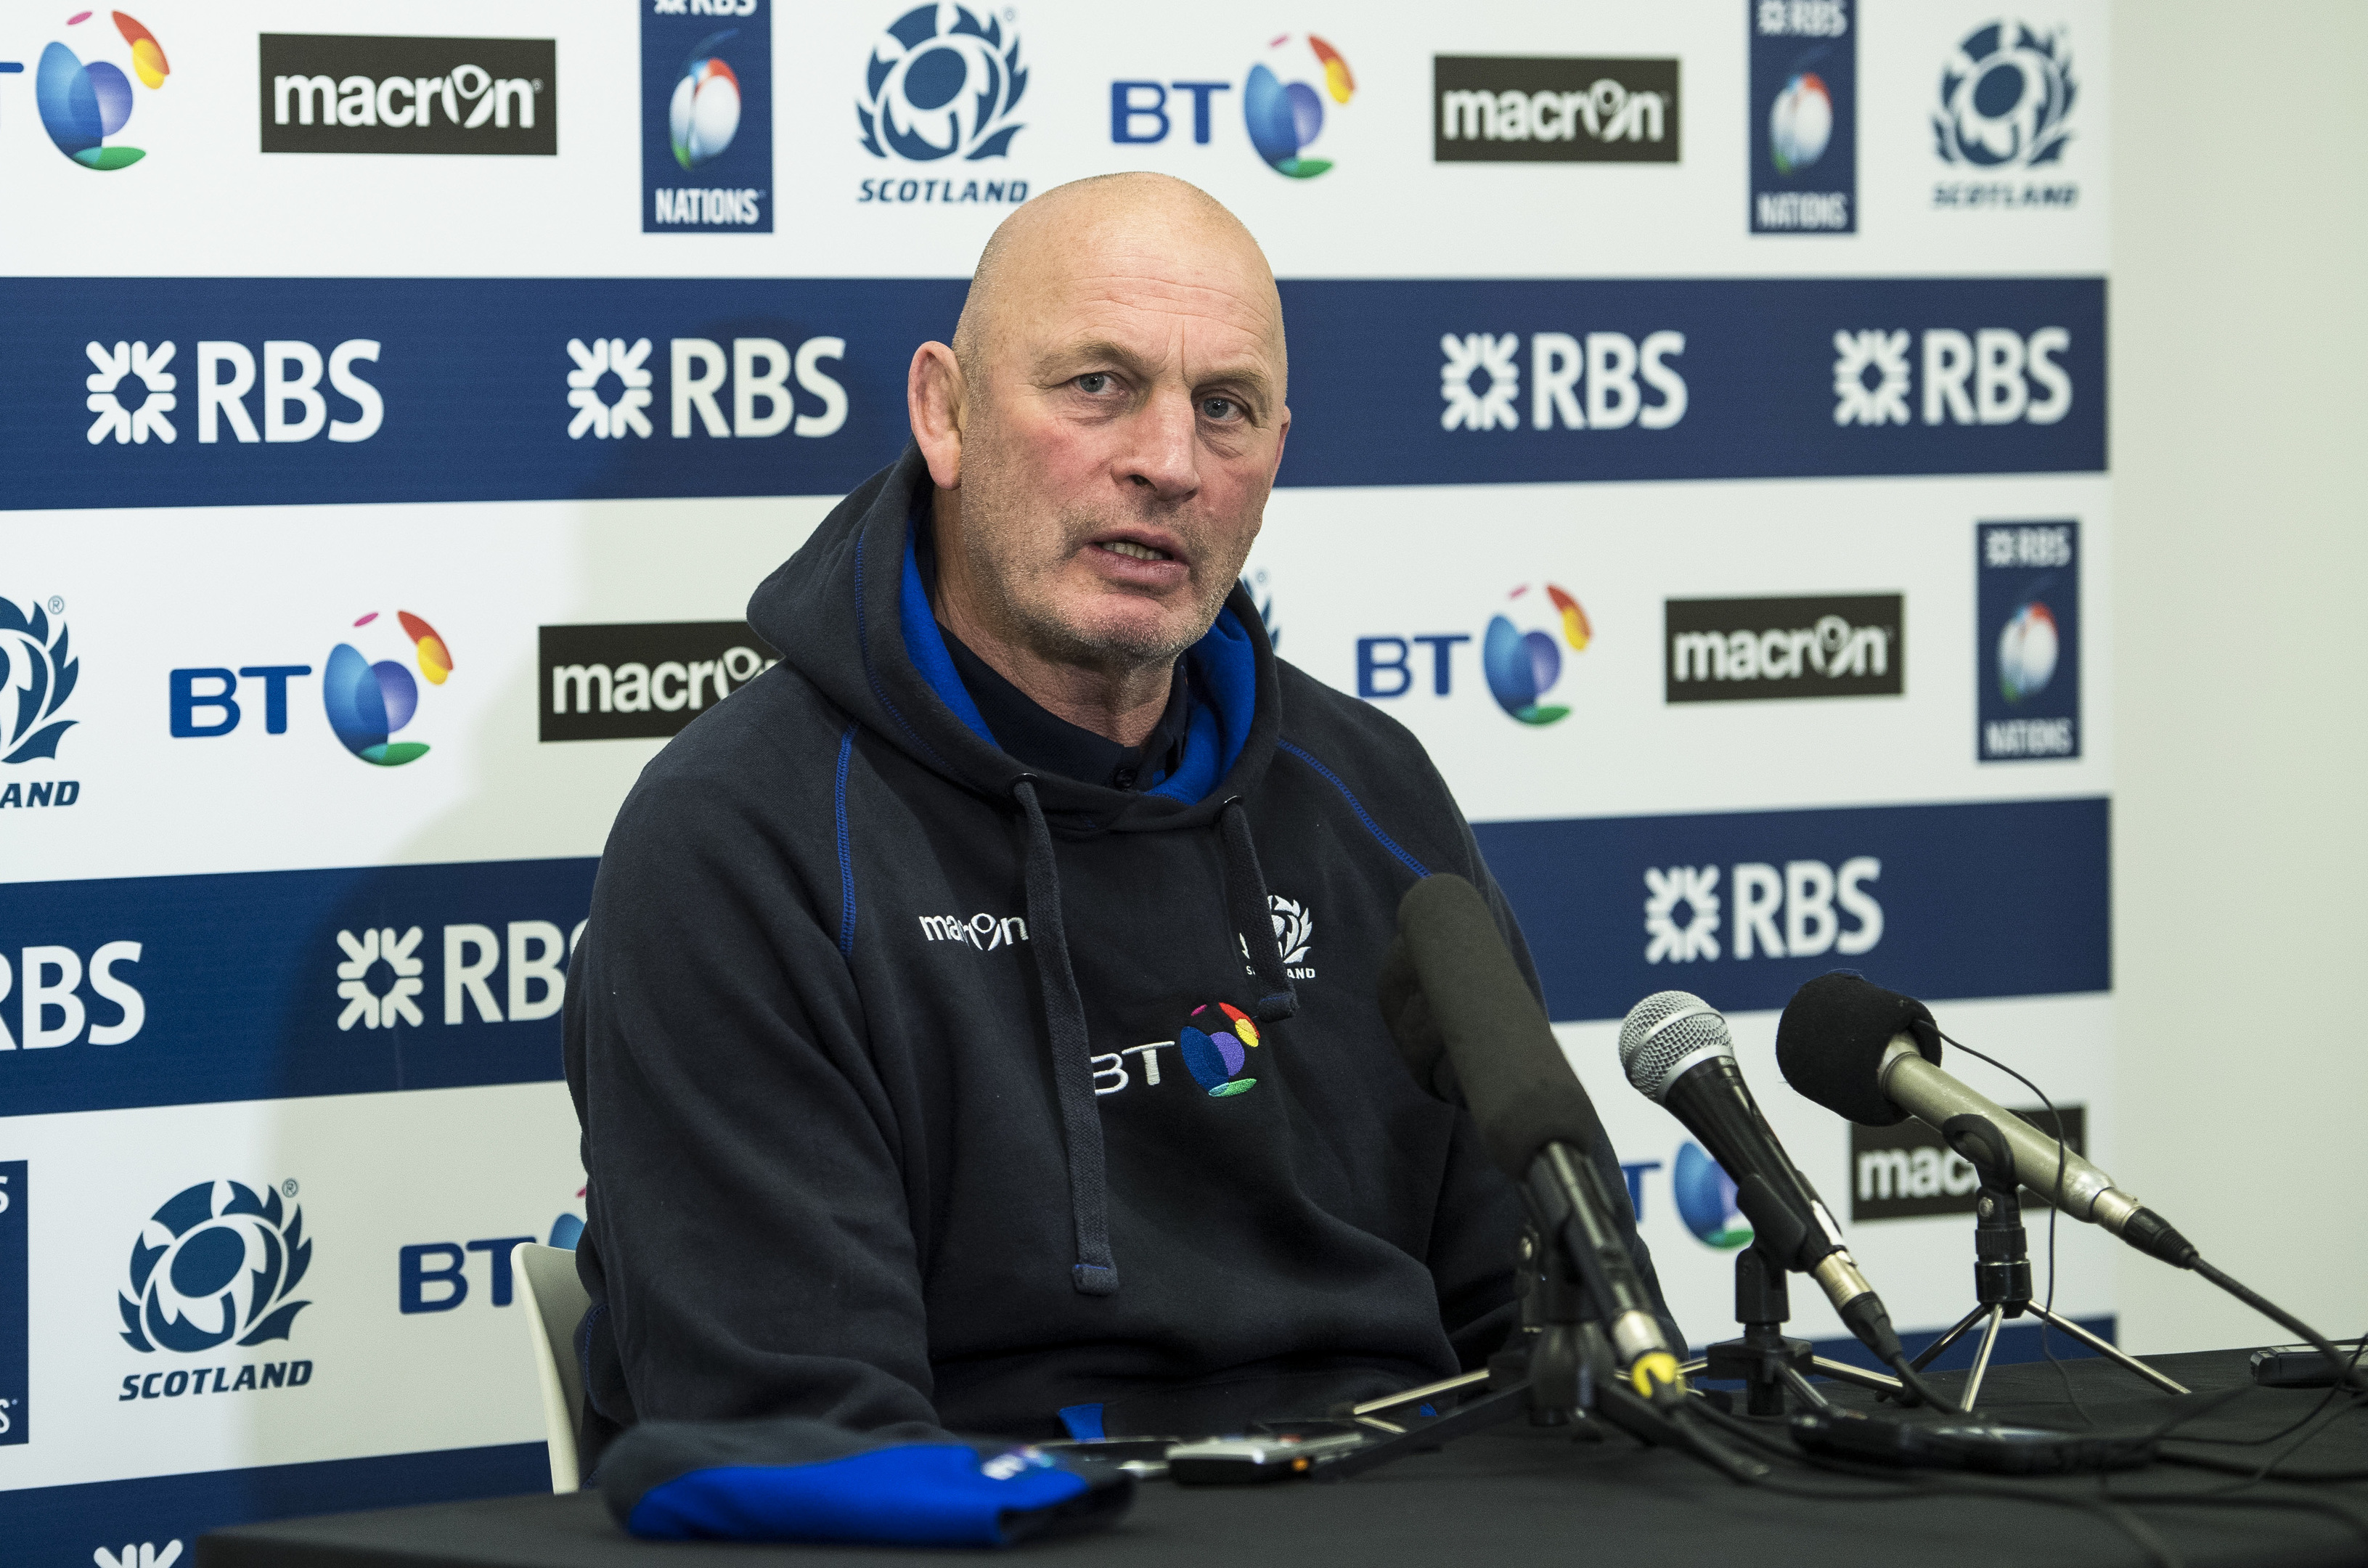 Scotland head coach Vern Cotter announces the team for Twickenham to the media.